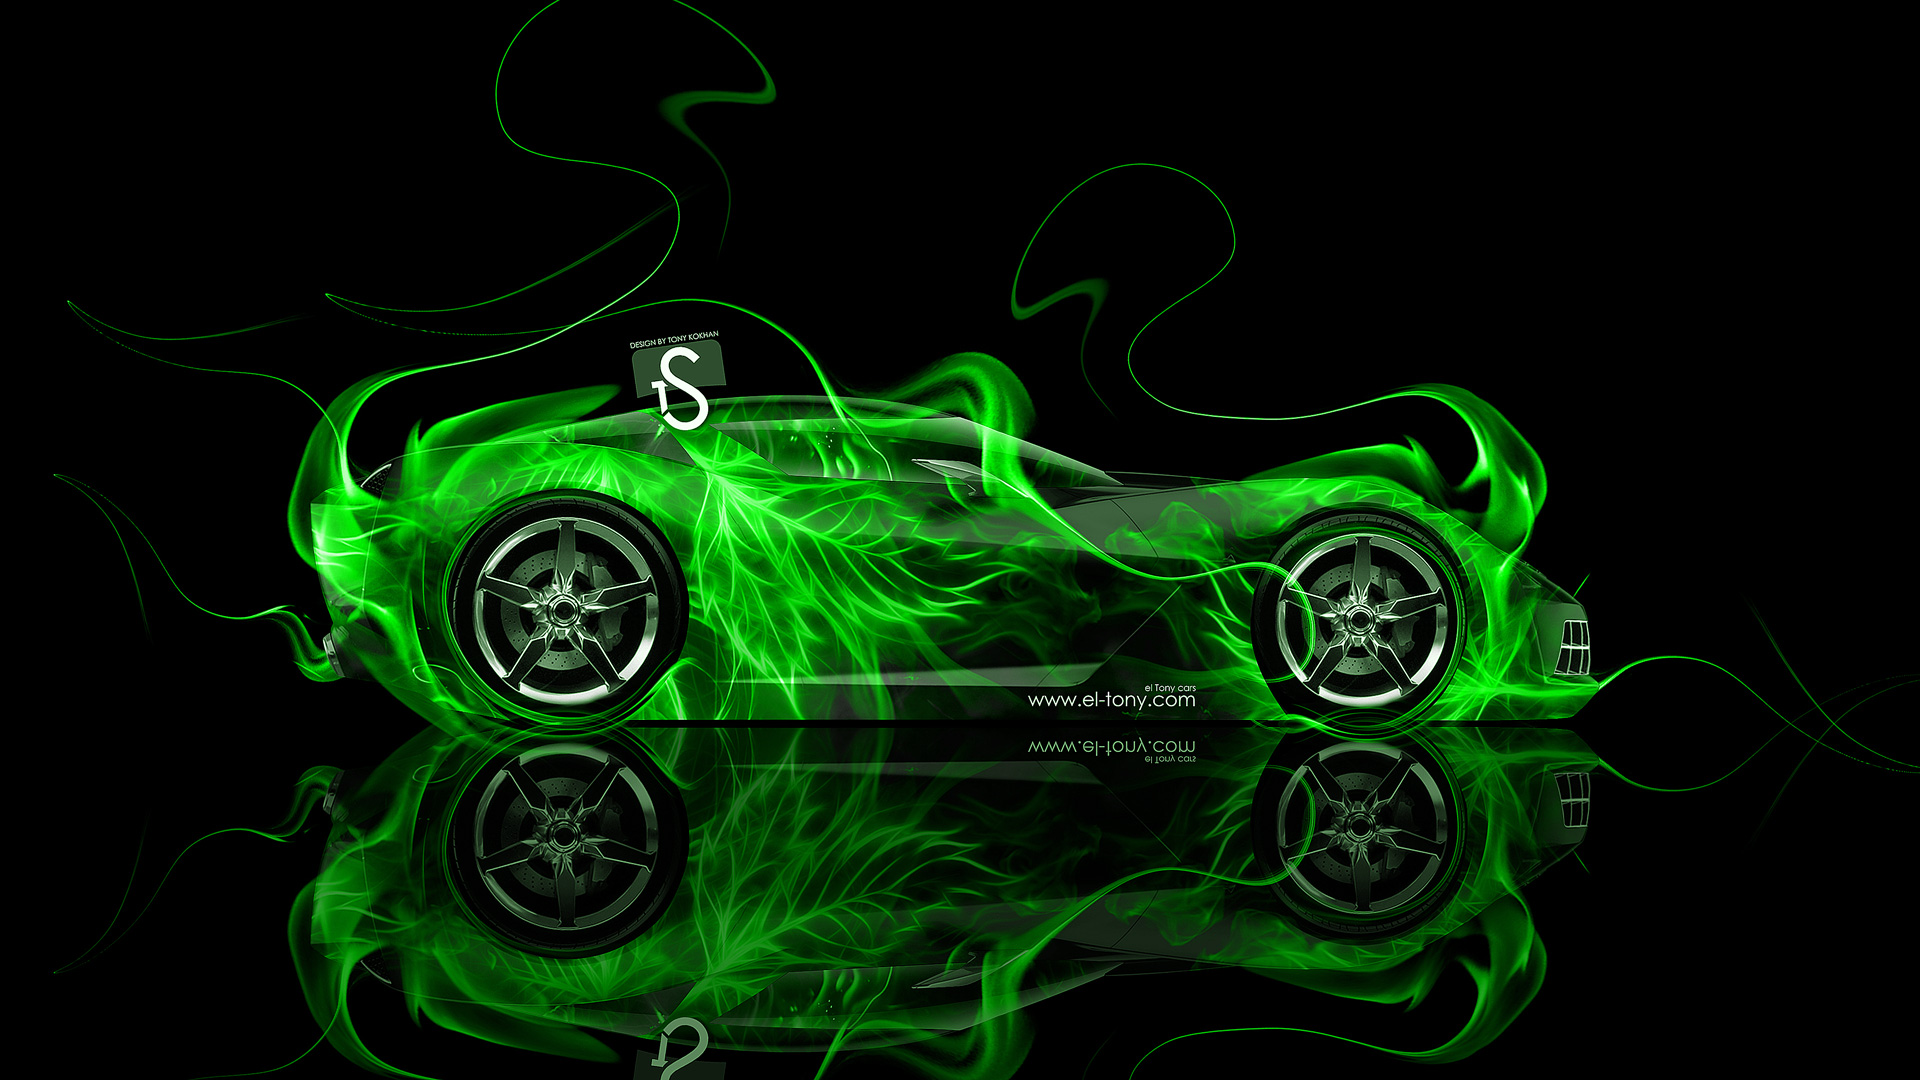 Chevrolet Corvette Stingray Fire Abstract Car 2014 El Tony